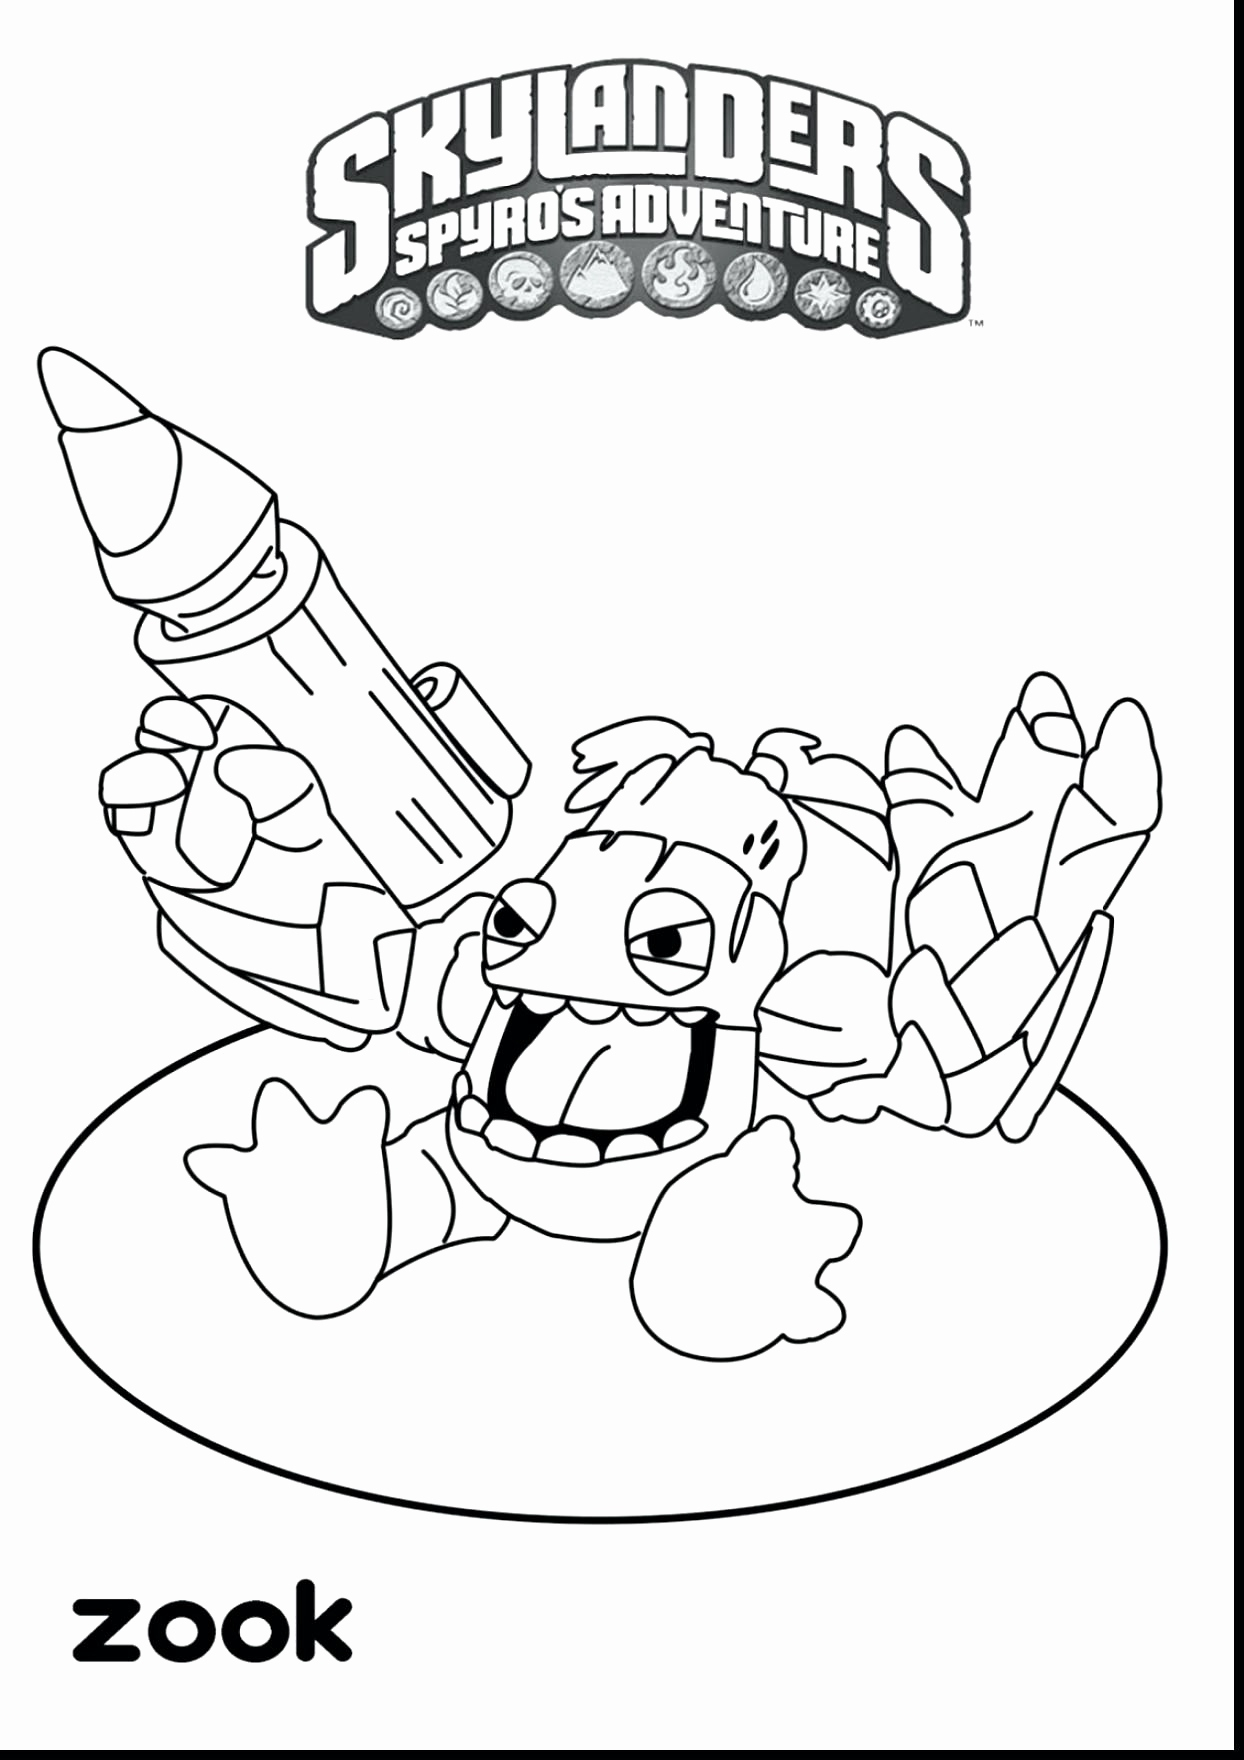 Poster Coloring Pages  Collection 2k - Free For kids